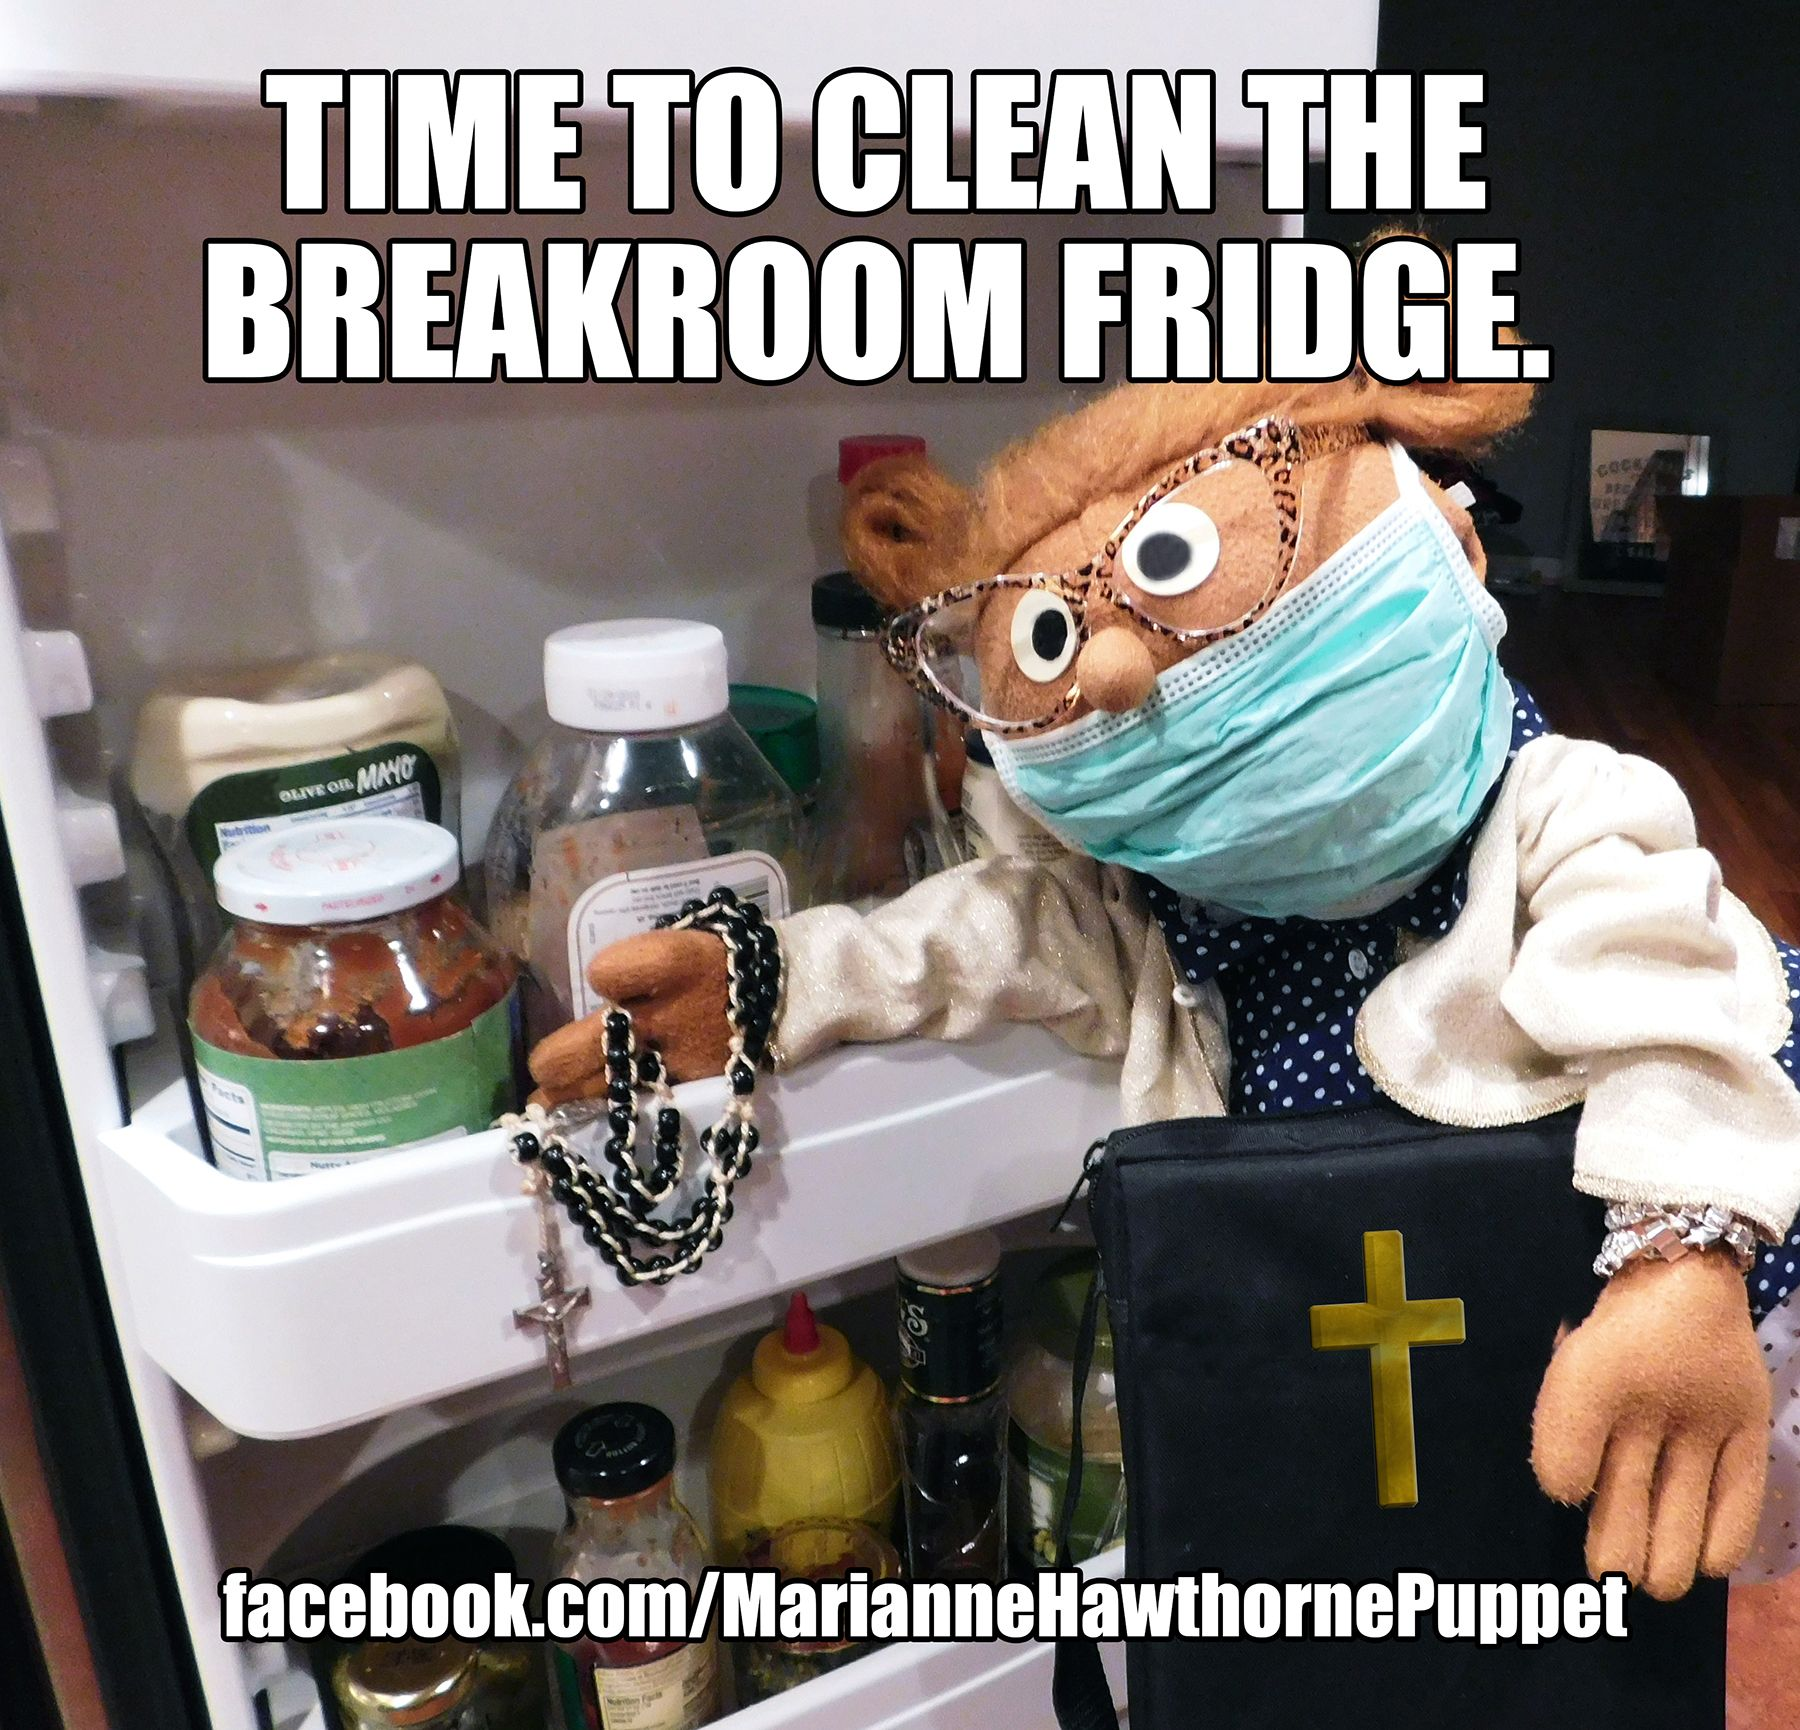 Time to clean the breakroom fridge. Office Humor Funny ...